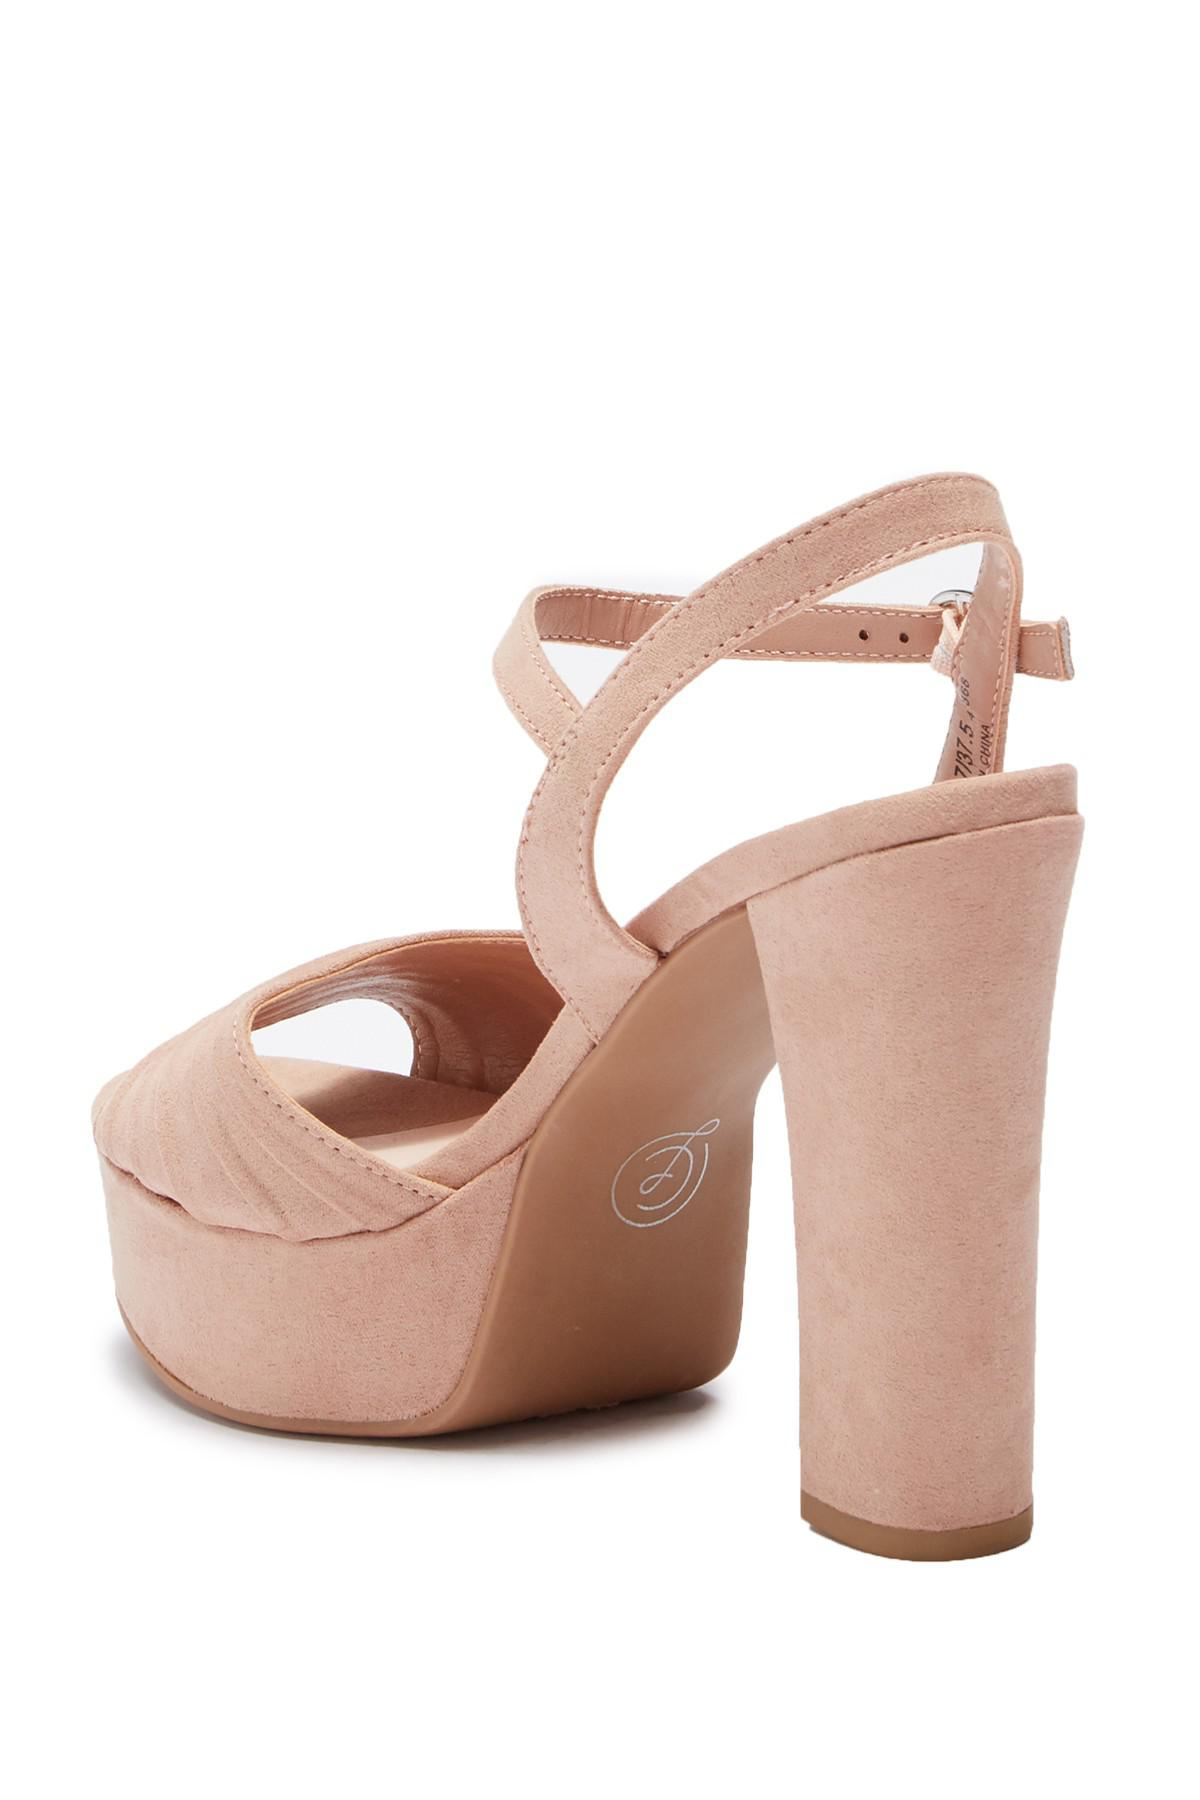 0f7679ab510f Chinese Laundry - Multicolor Allie Pleated Platform Sandal - Lyst. View  fullscreen